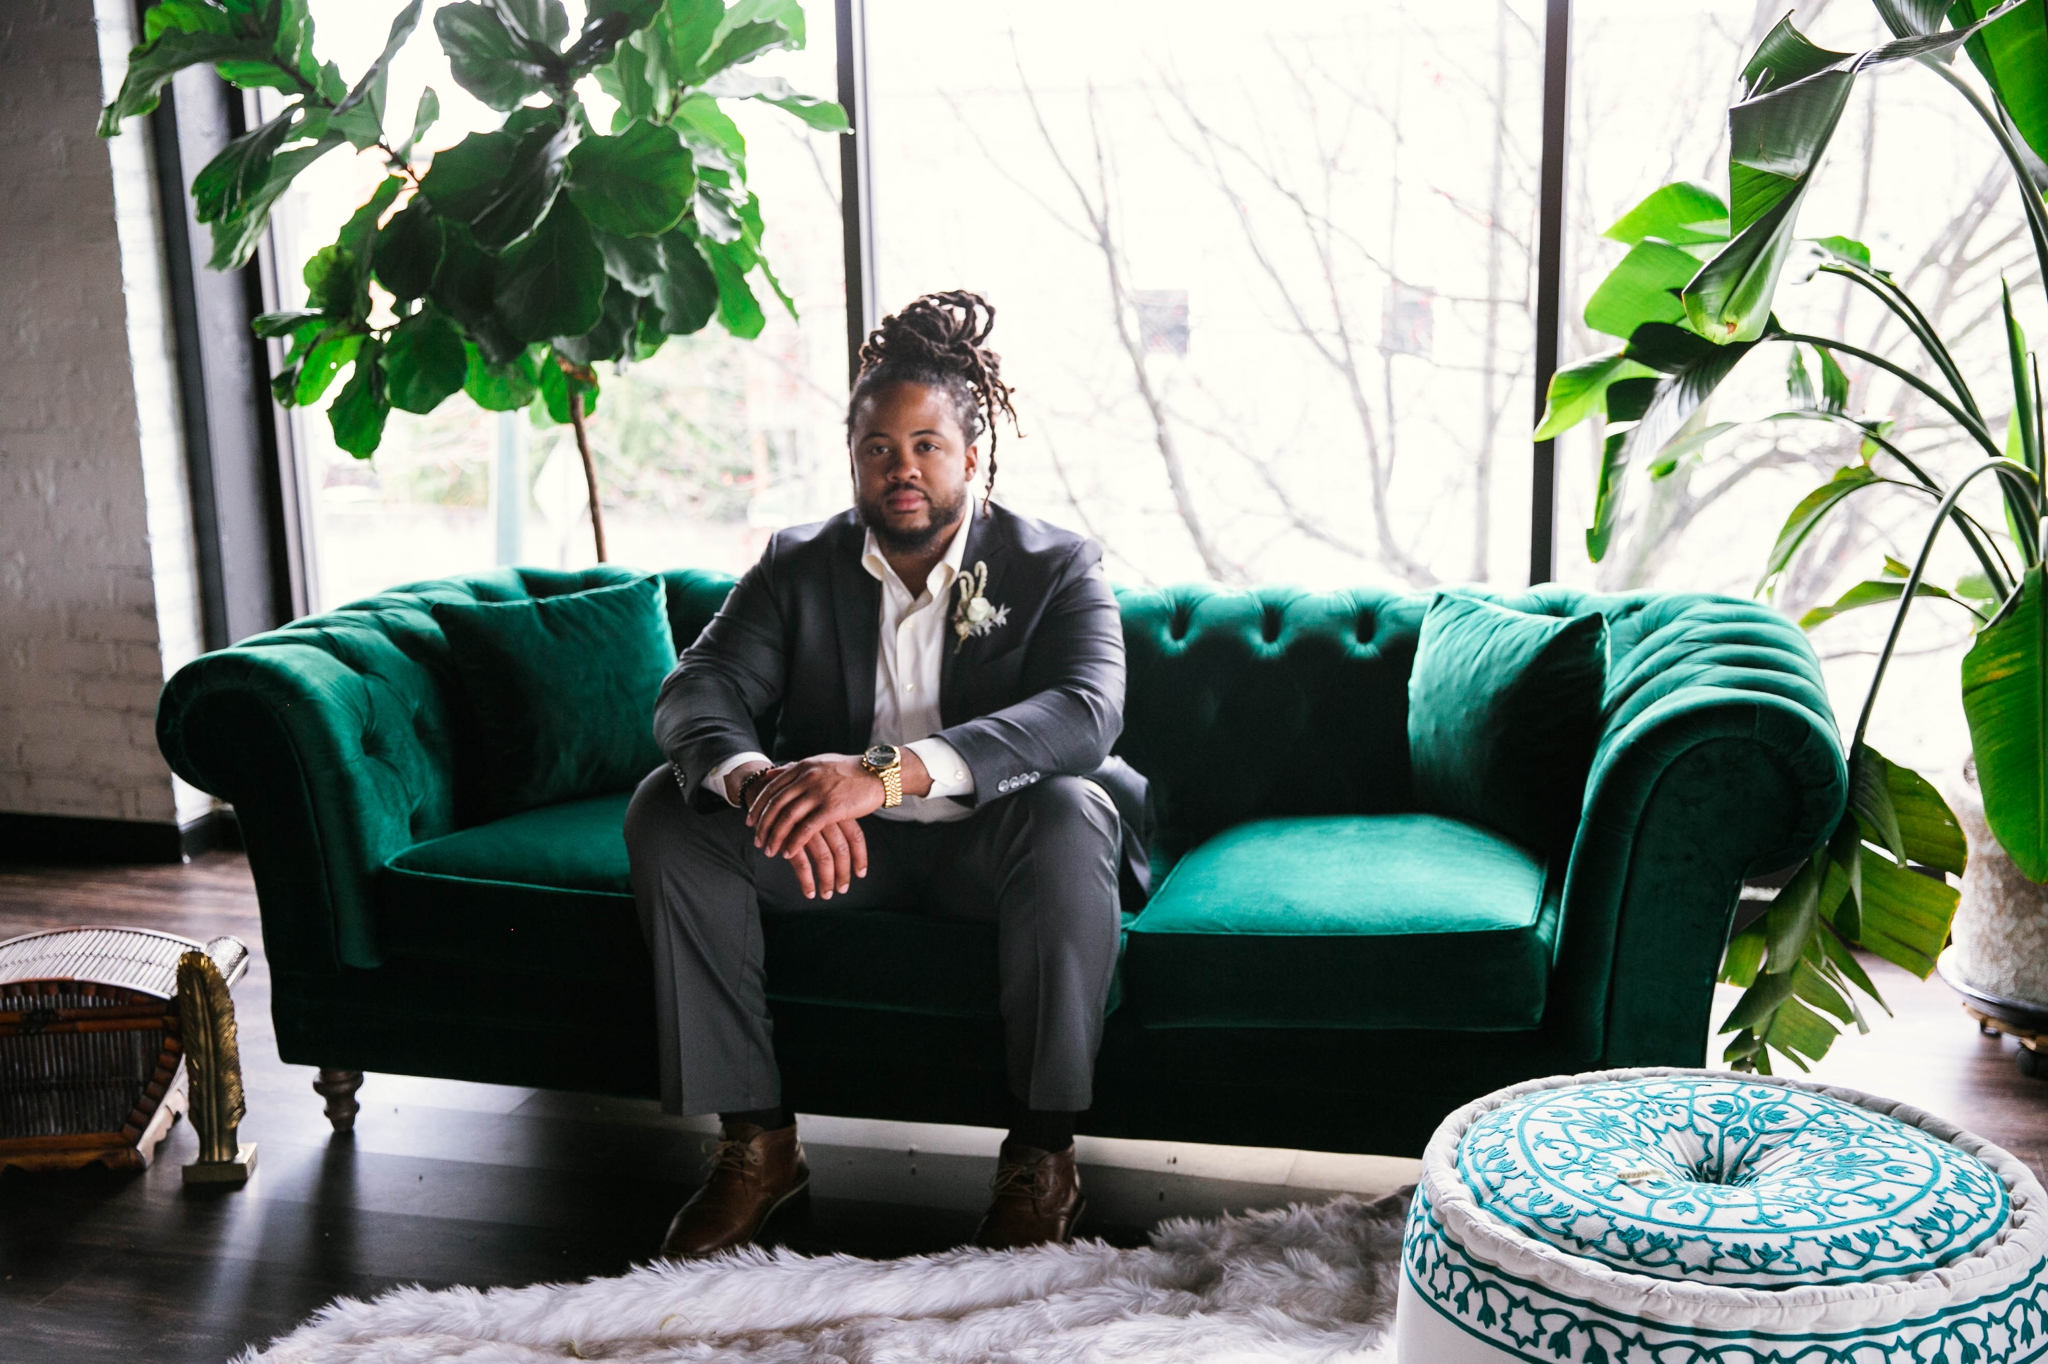 Indoor Natural light portrait of a black groom sitting on an emerald tufted sofa - laughing and having fun with each other- flowers in natural african american hair - oahu hawaii wedding photographer